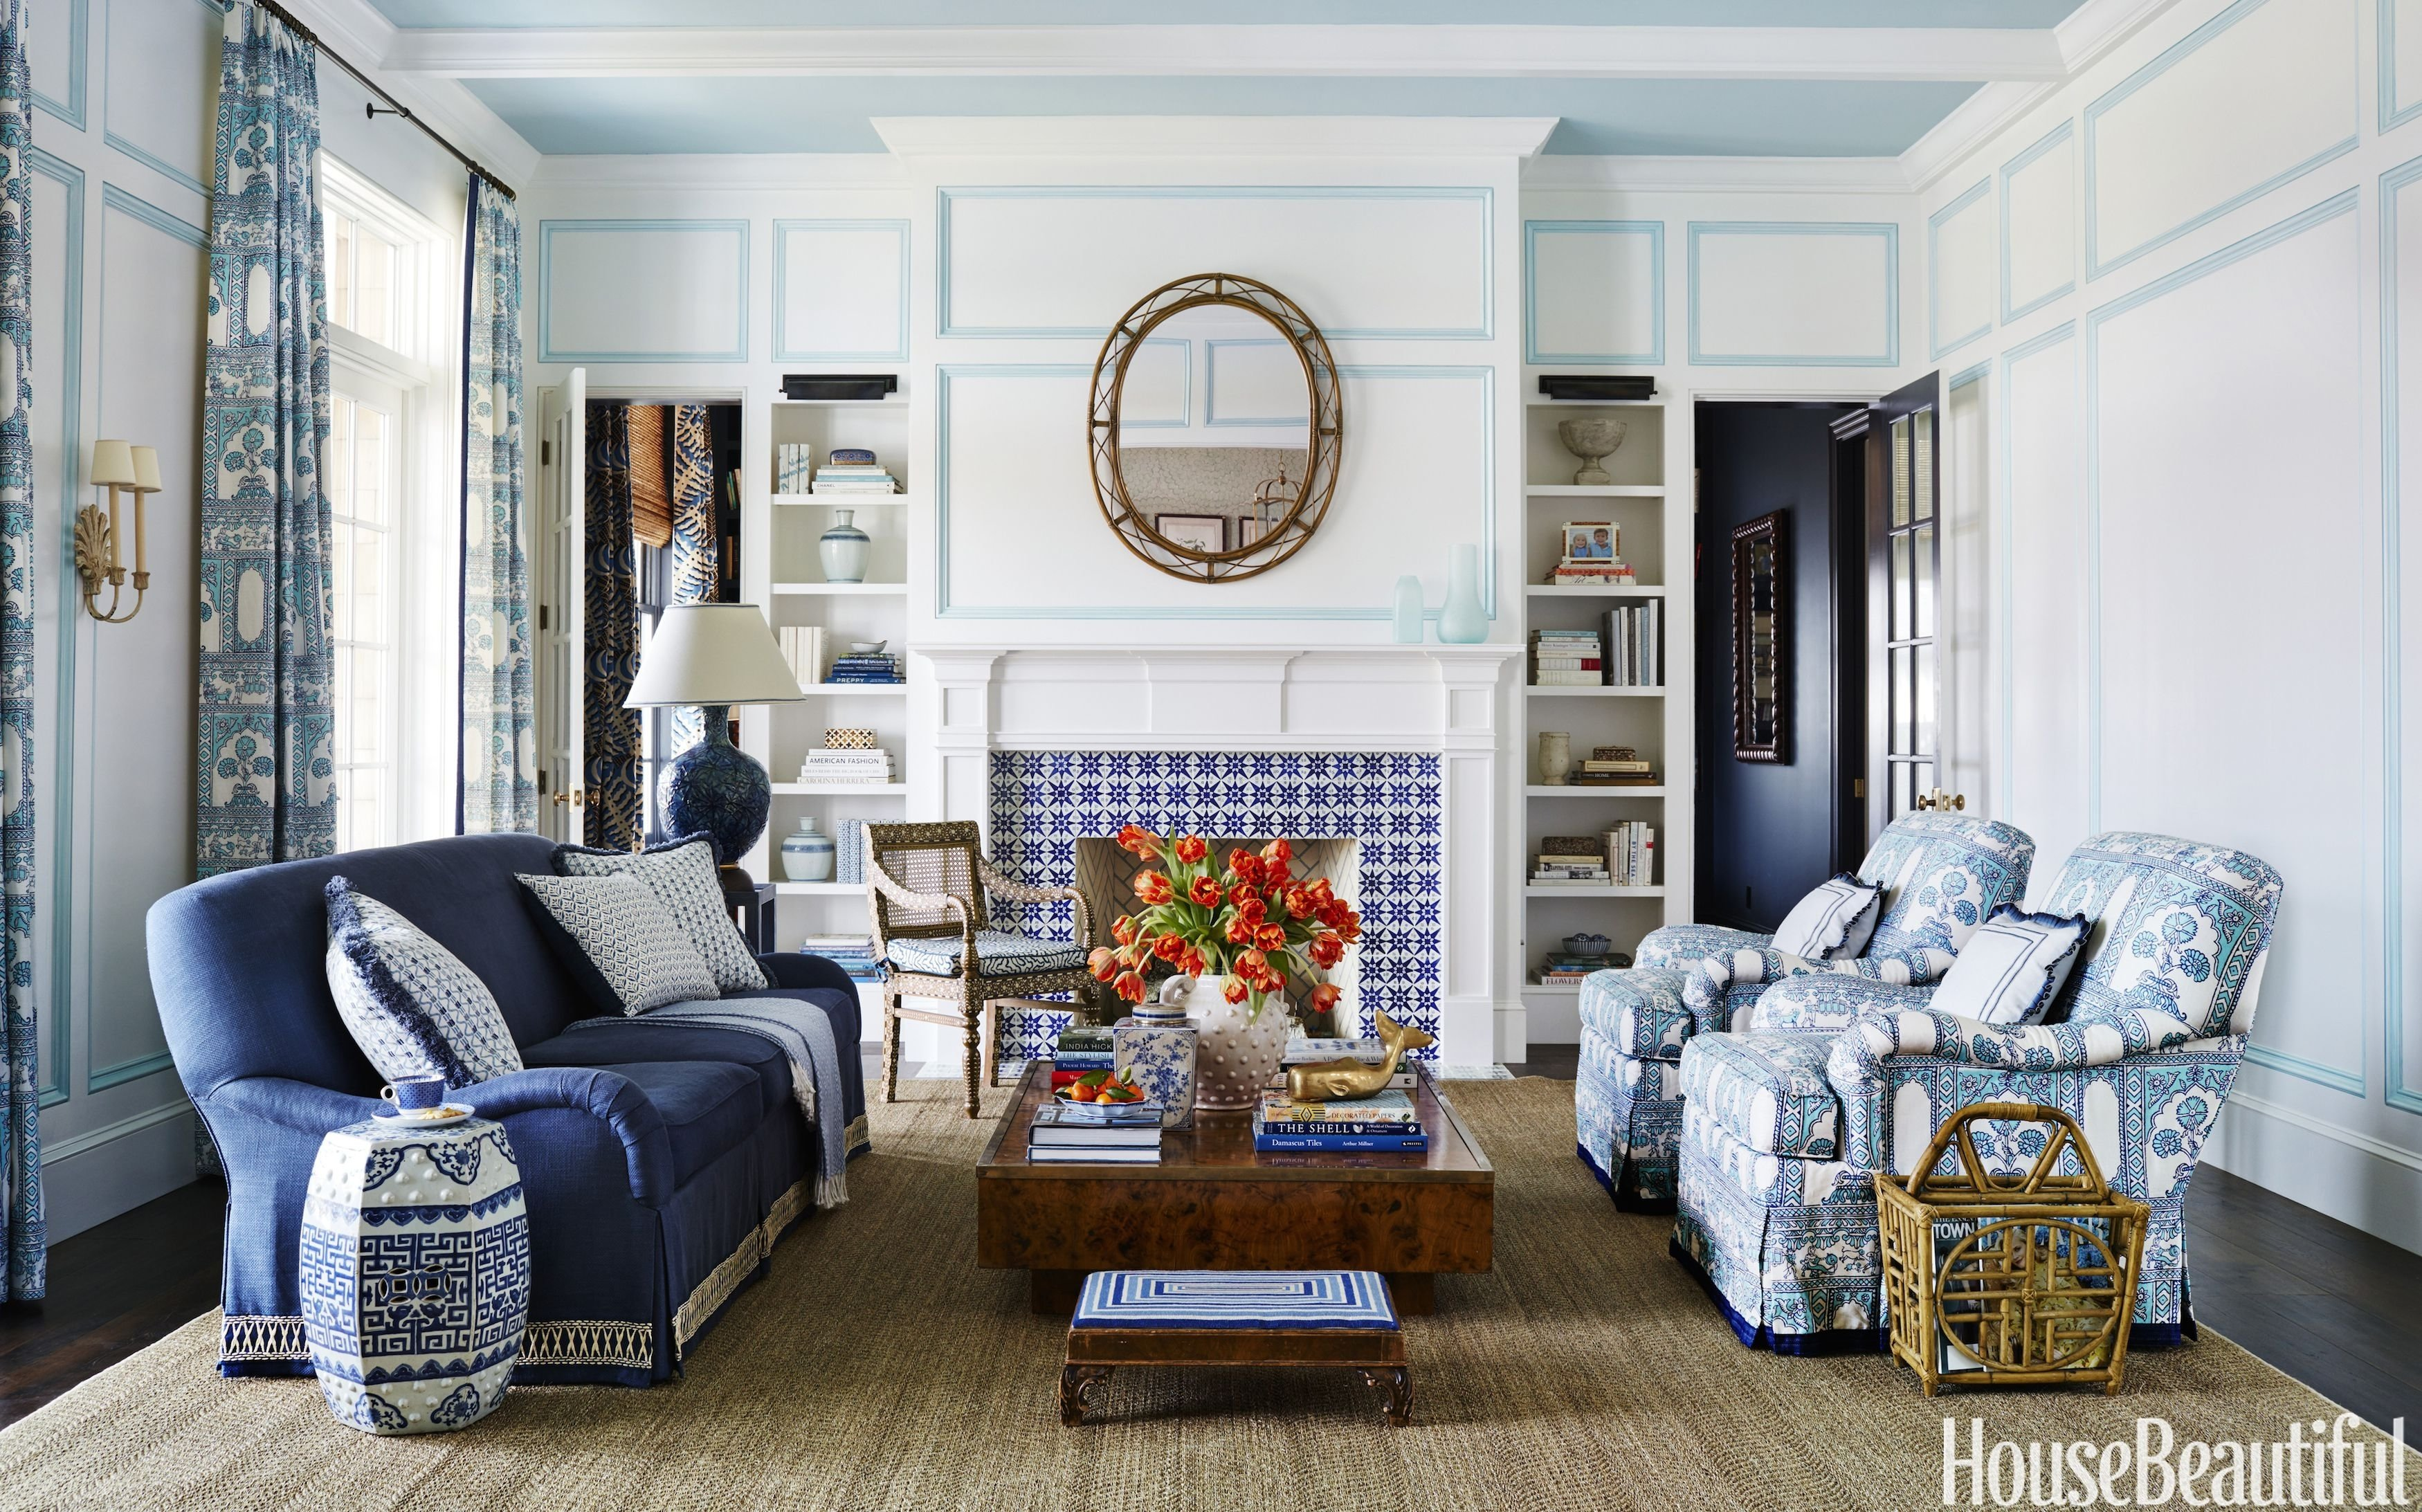 10 Lovely Living Room Decorating Ideas Pictures 70 best living room decorating ideas designs housebeautiful 8